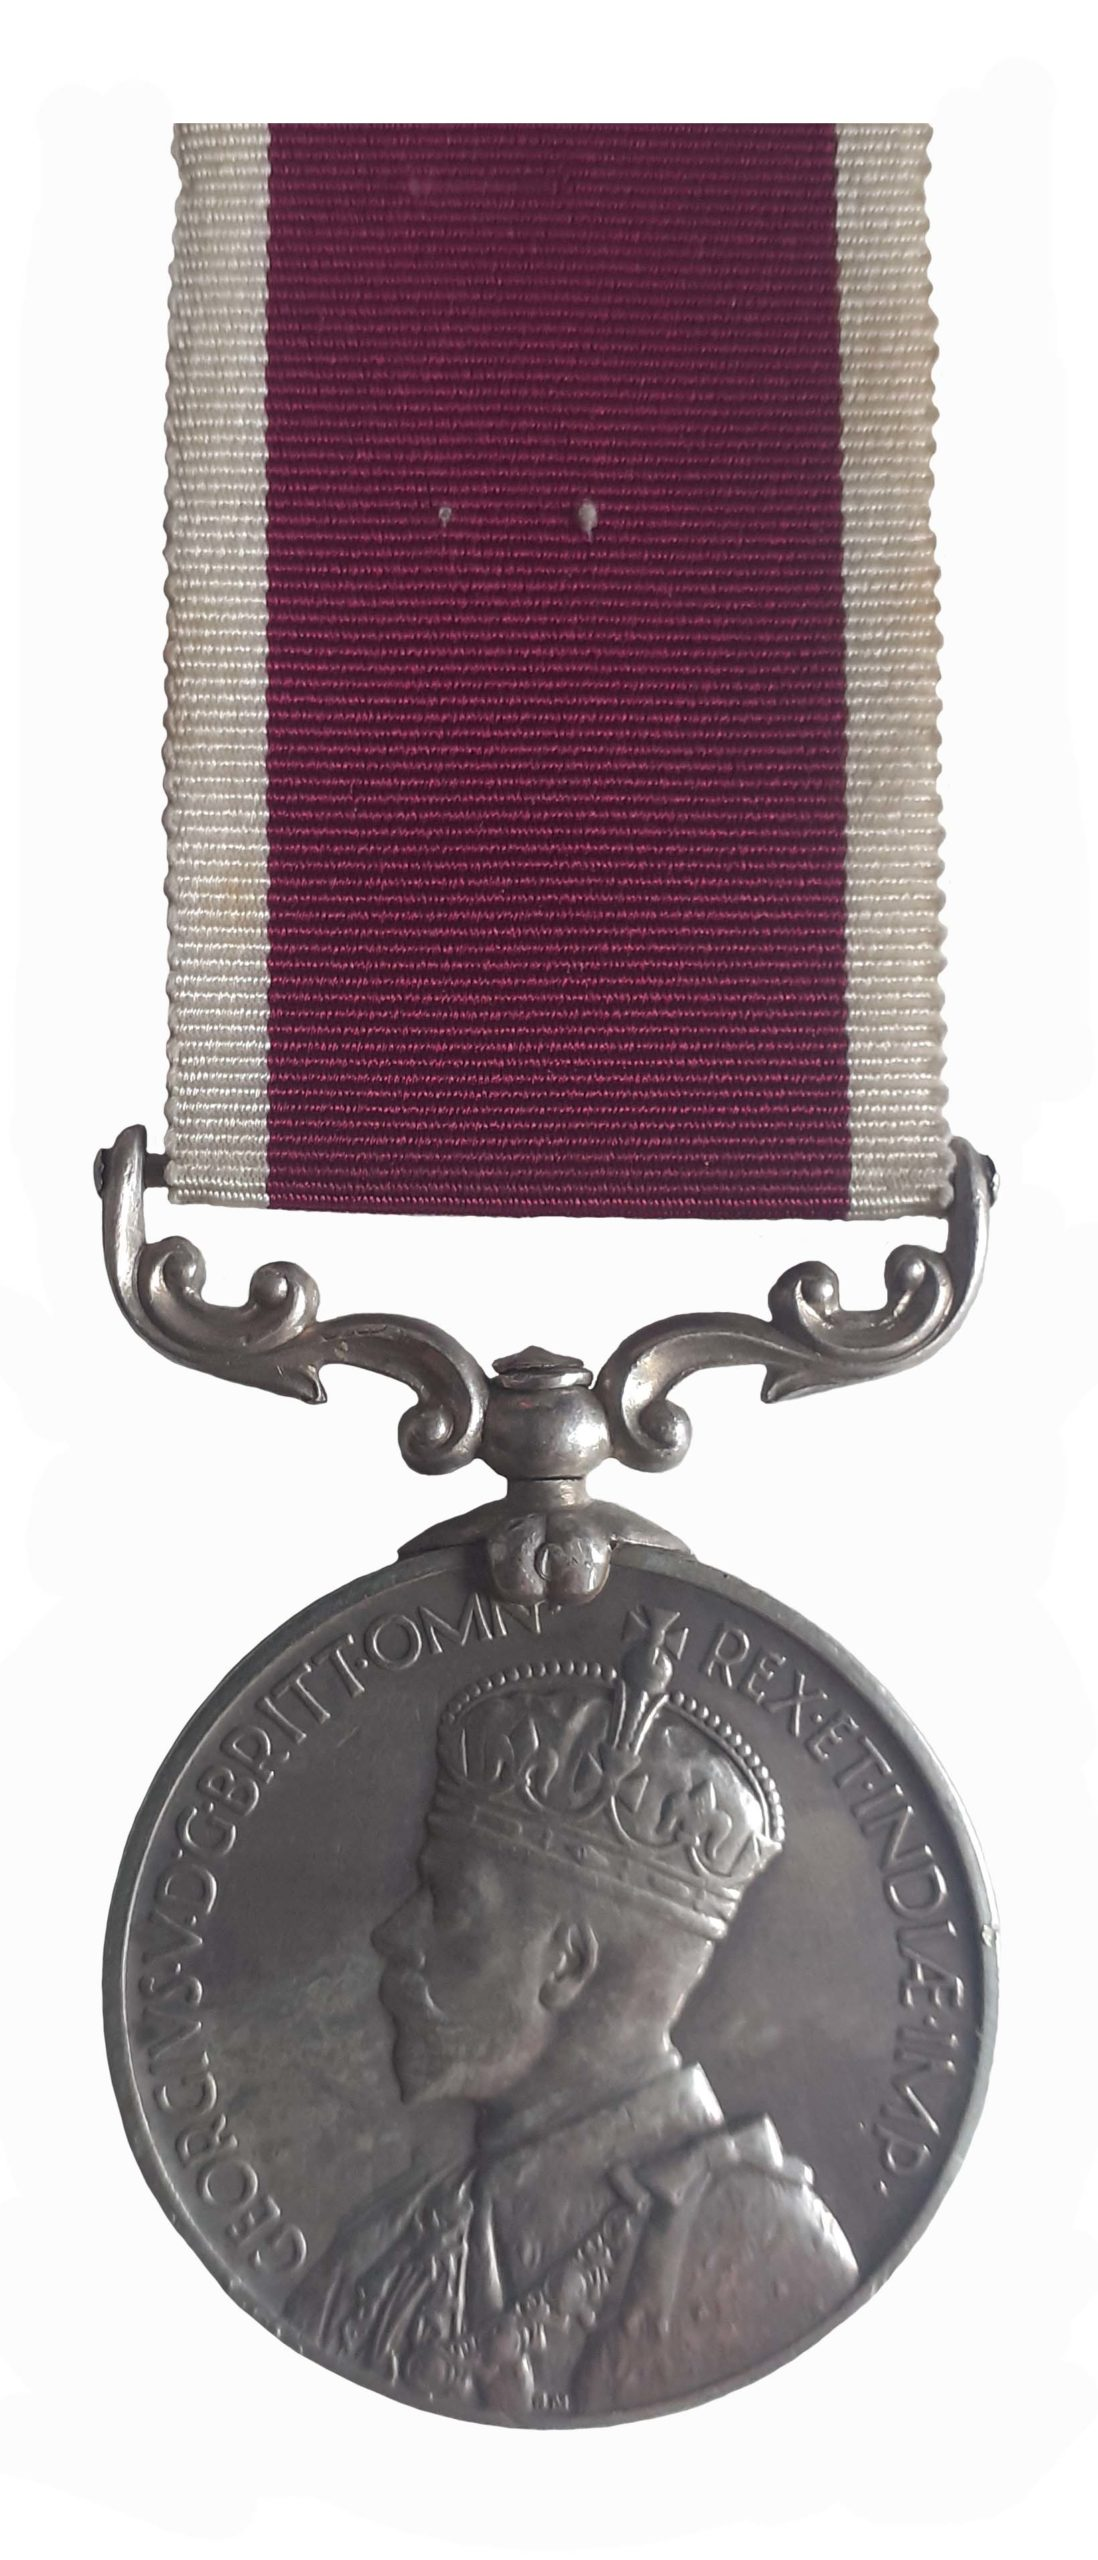 Indian Army Long Service & Good Conduct Medal, GVR, Ind Imp, to Lance Duffadar Allah Bakhsh